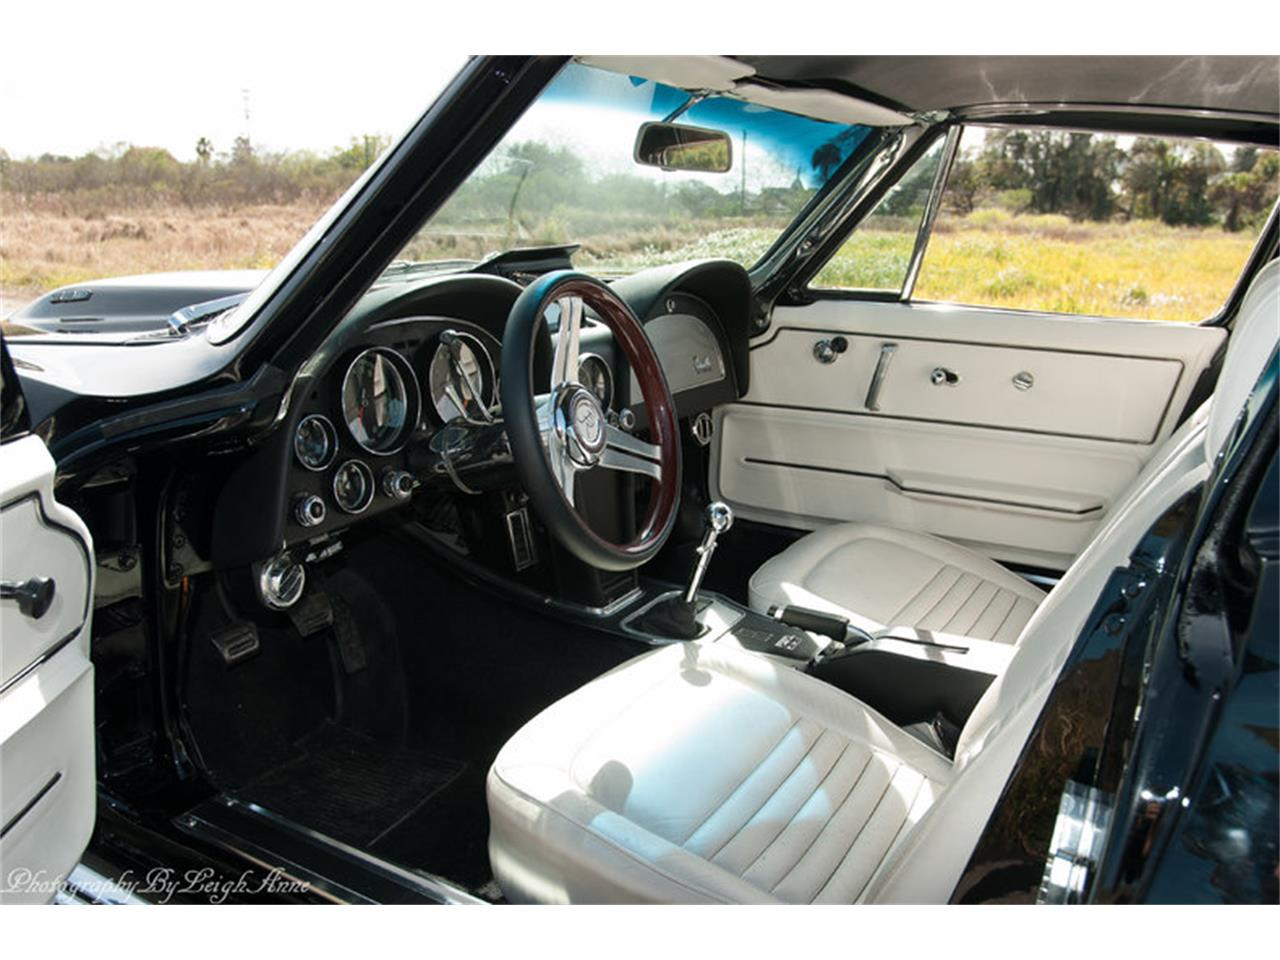 Large Picture of 1967 Corvette located in Florida Auction Vehicle Offered by Premier Auction Group - NF44